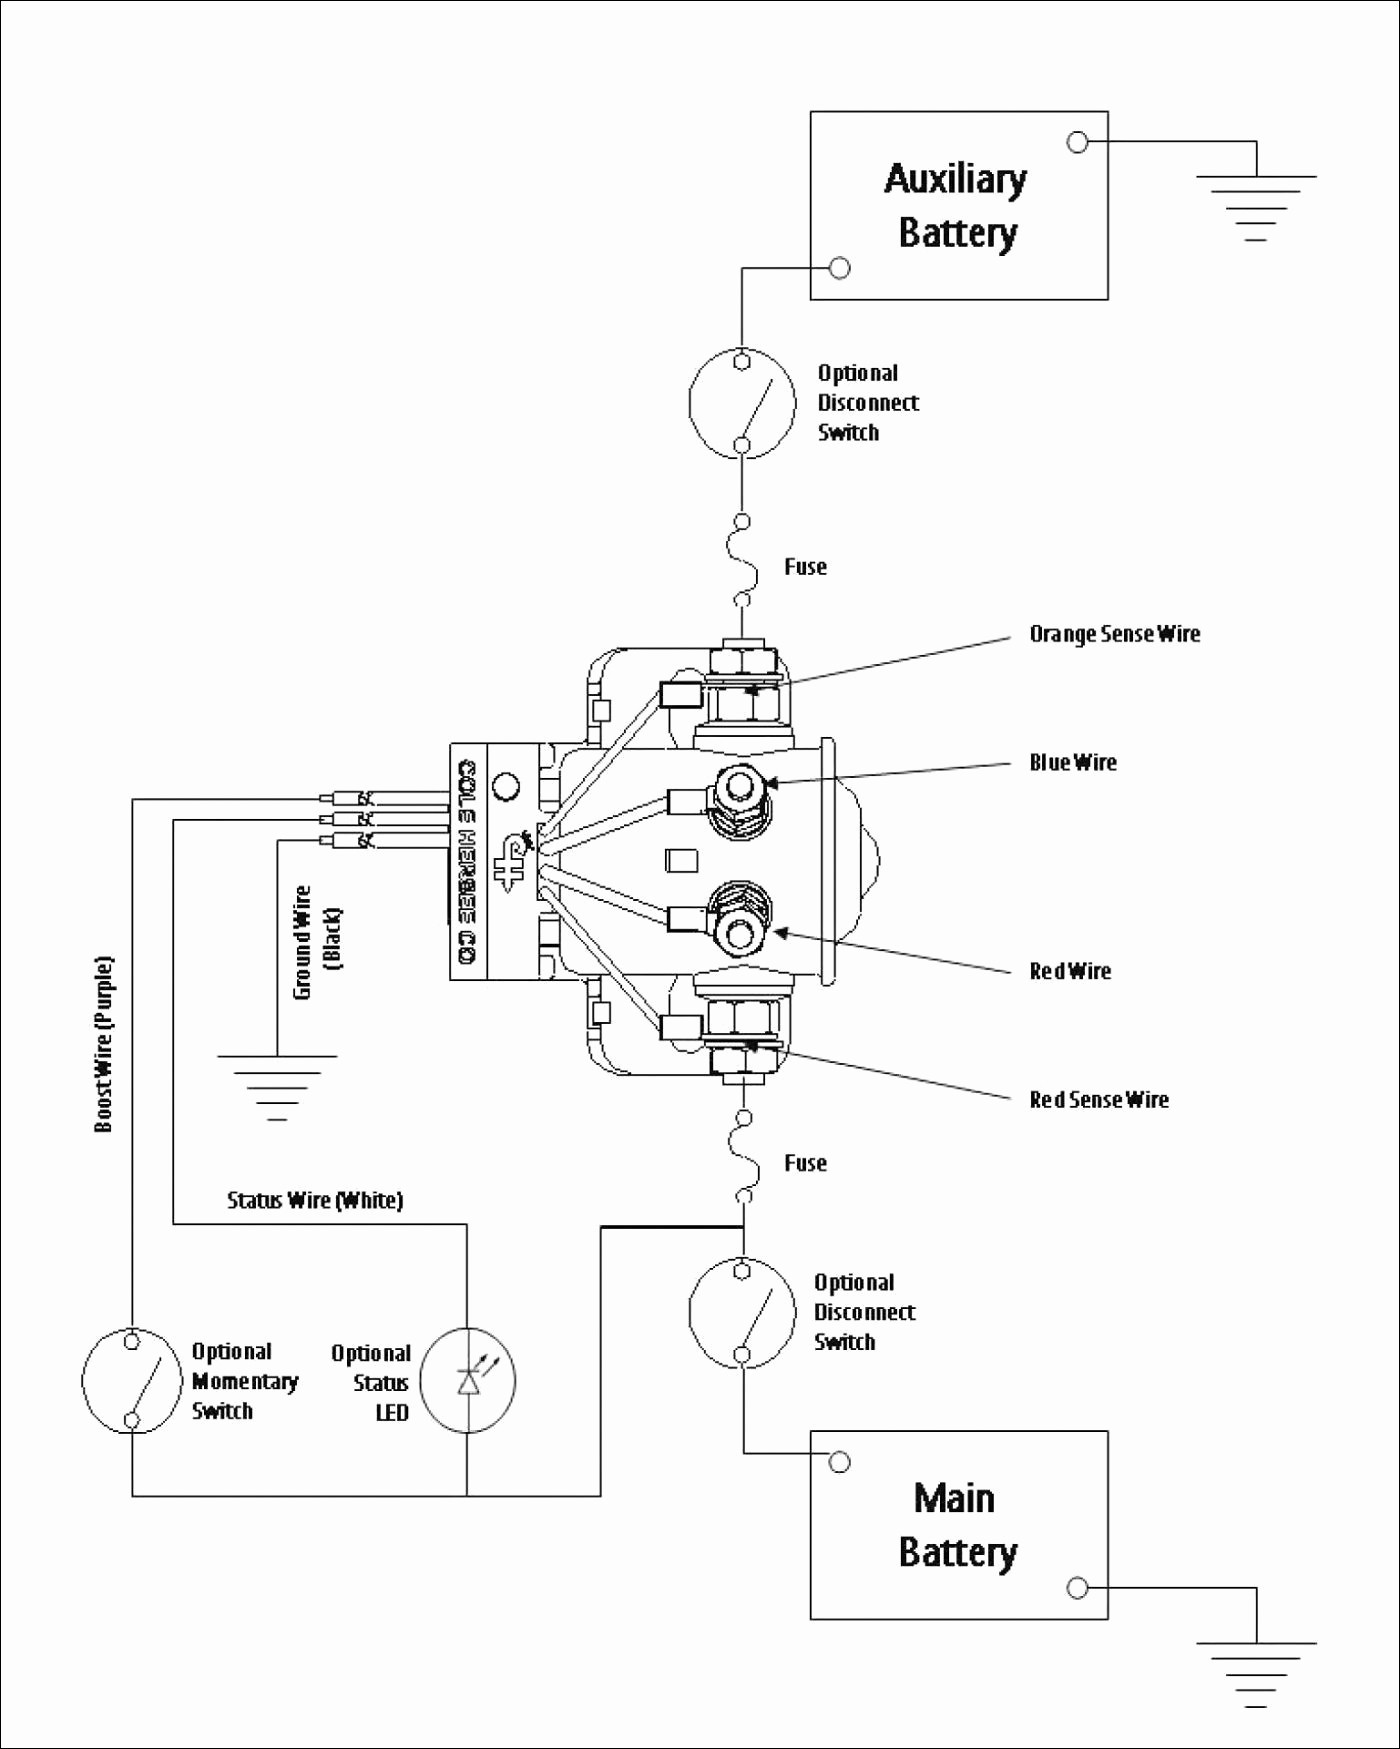 Wiring Diagram for Western Snow Plow the Boss Snow Plow Wiring Diagrams Of Wiring Diagram for Western Snow Plow